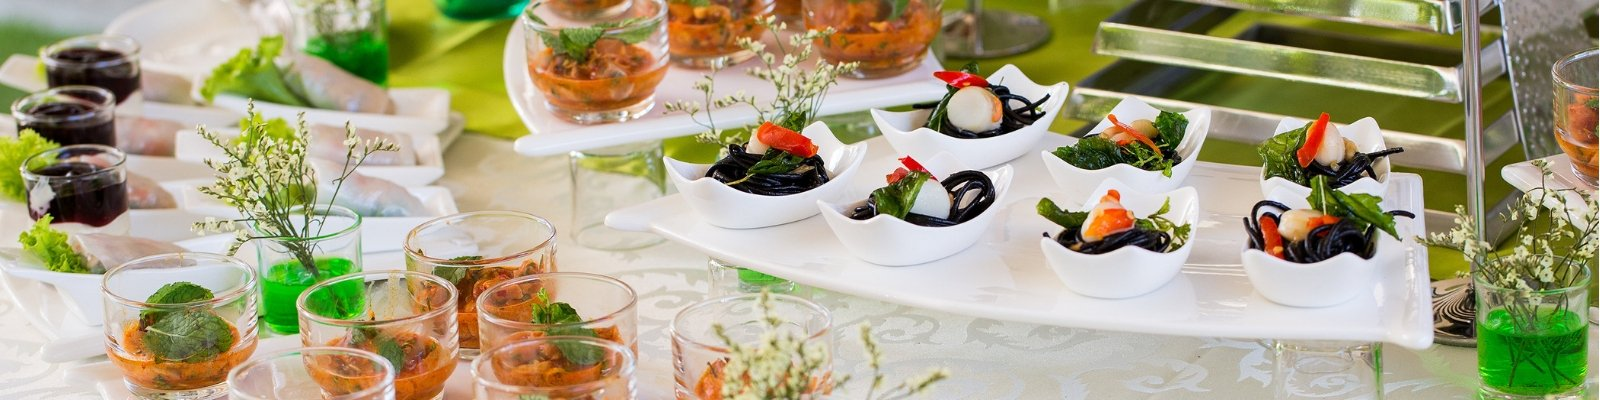 fresh & joy events - Salate und Fingerfood in Hannover